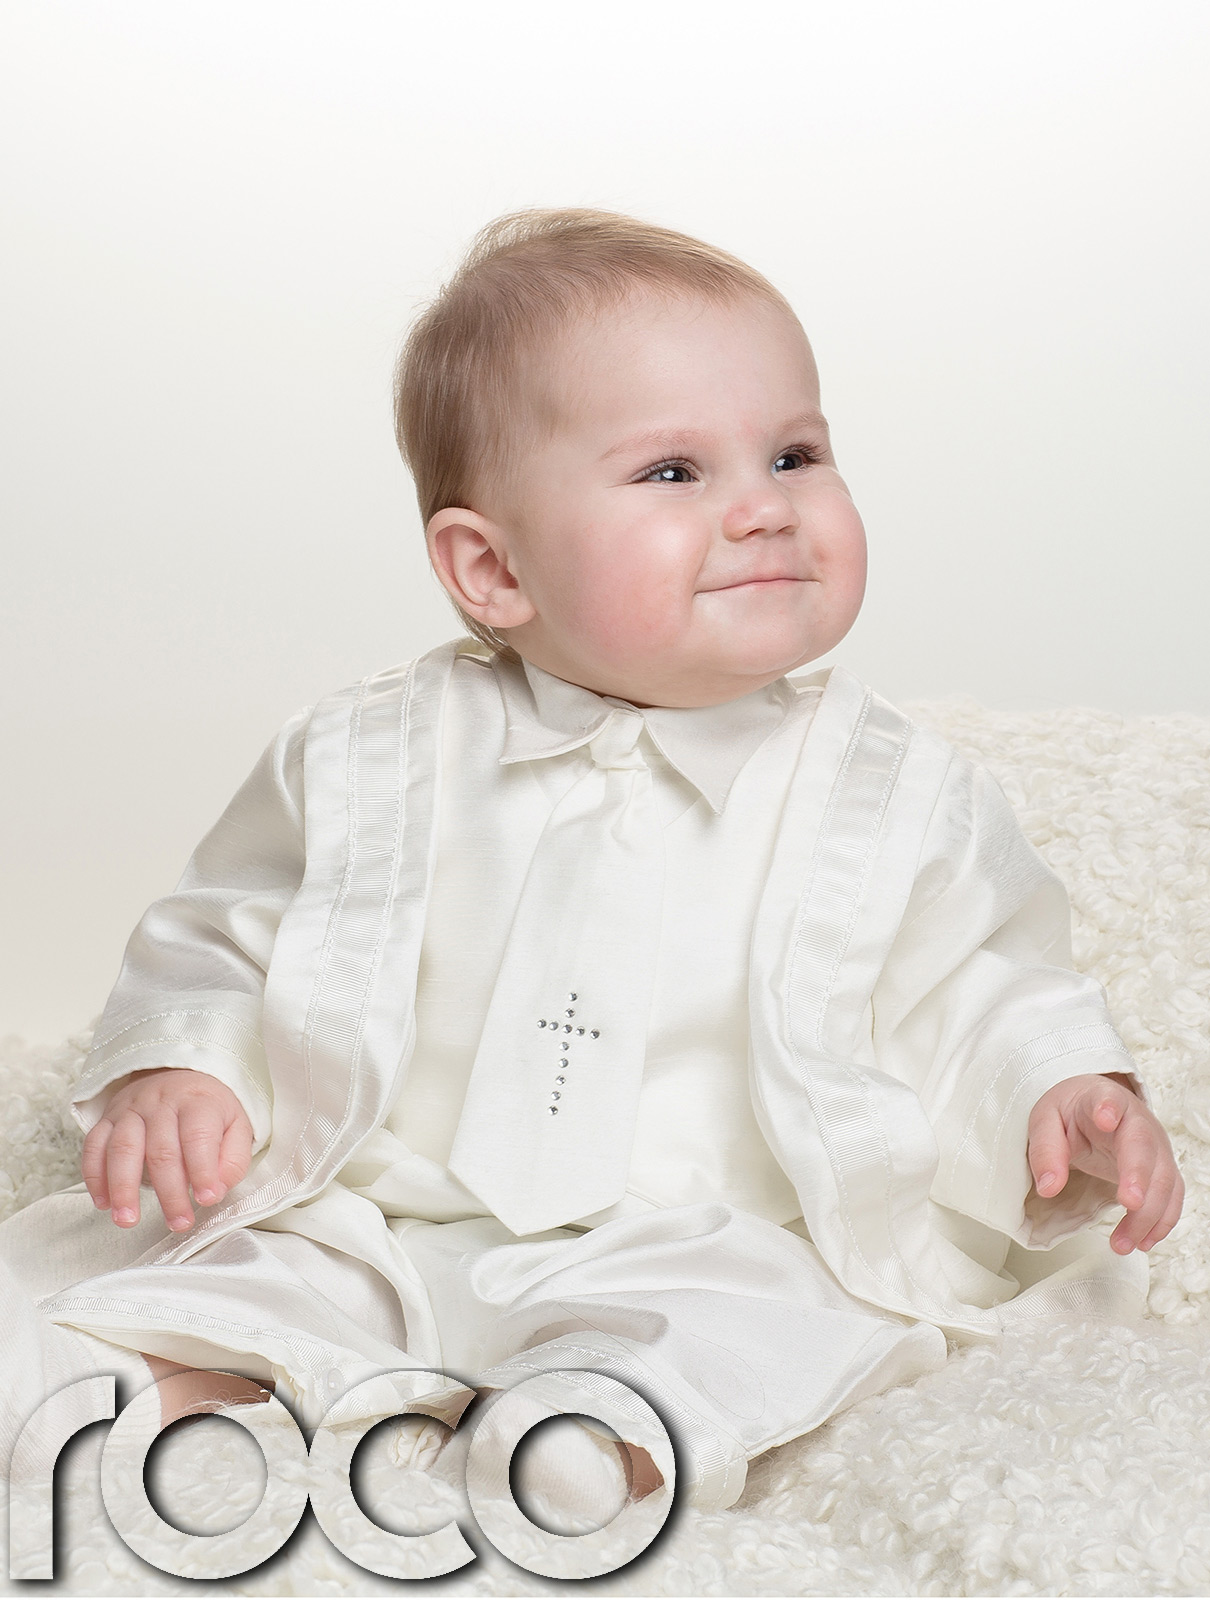 Shop our selection of christening gowns for girls and baptism outfits for boys at Baby Depot. Save with everyday low prices and Free Shipping available.